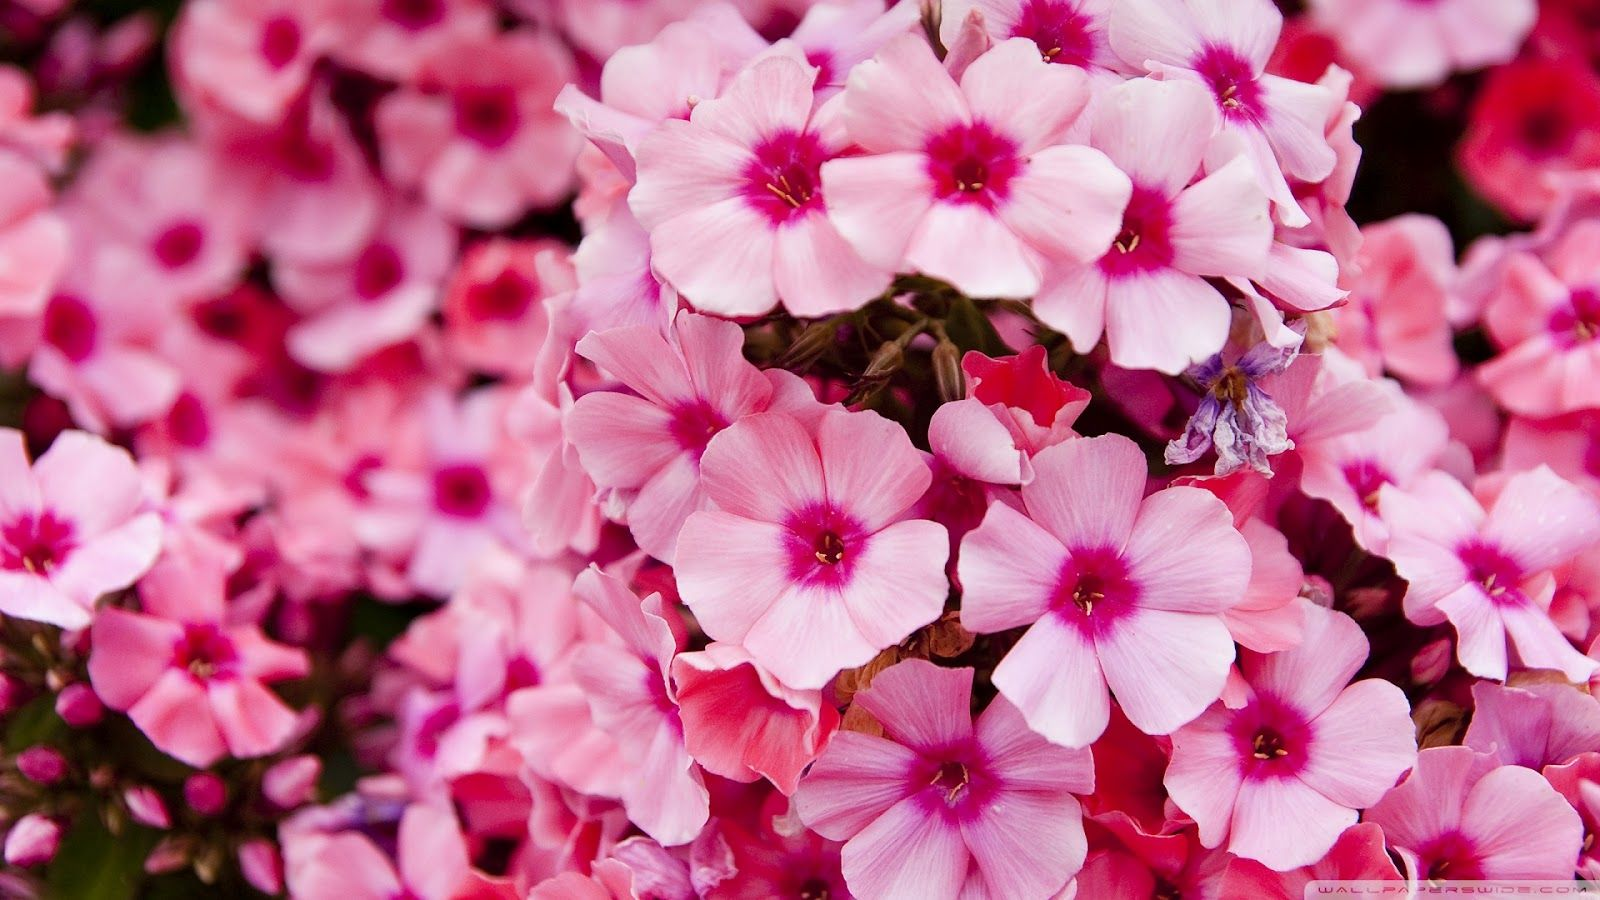 35 High Definition Pink Wallpapers Backgrounds For Free: Bing Desktop Wallpaper Flowers Pink